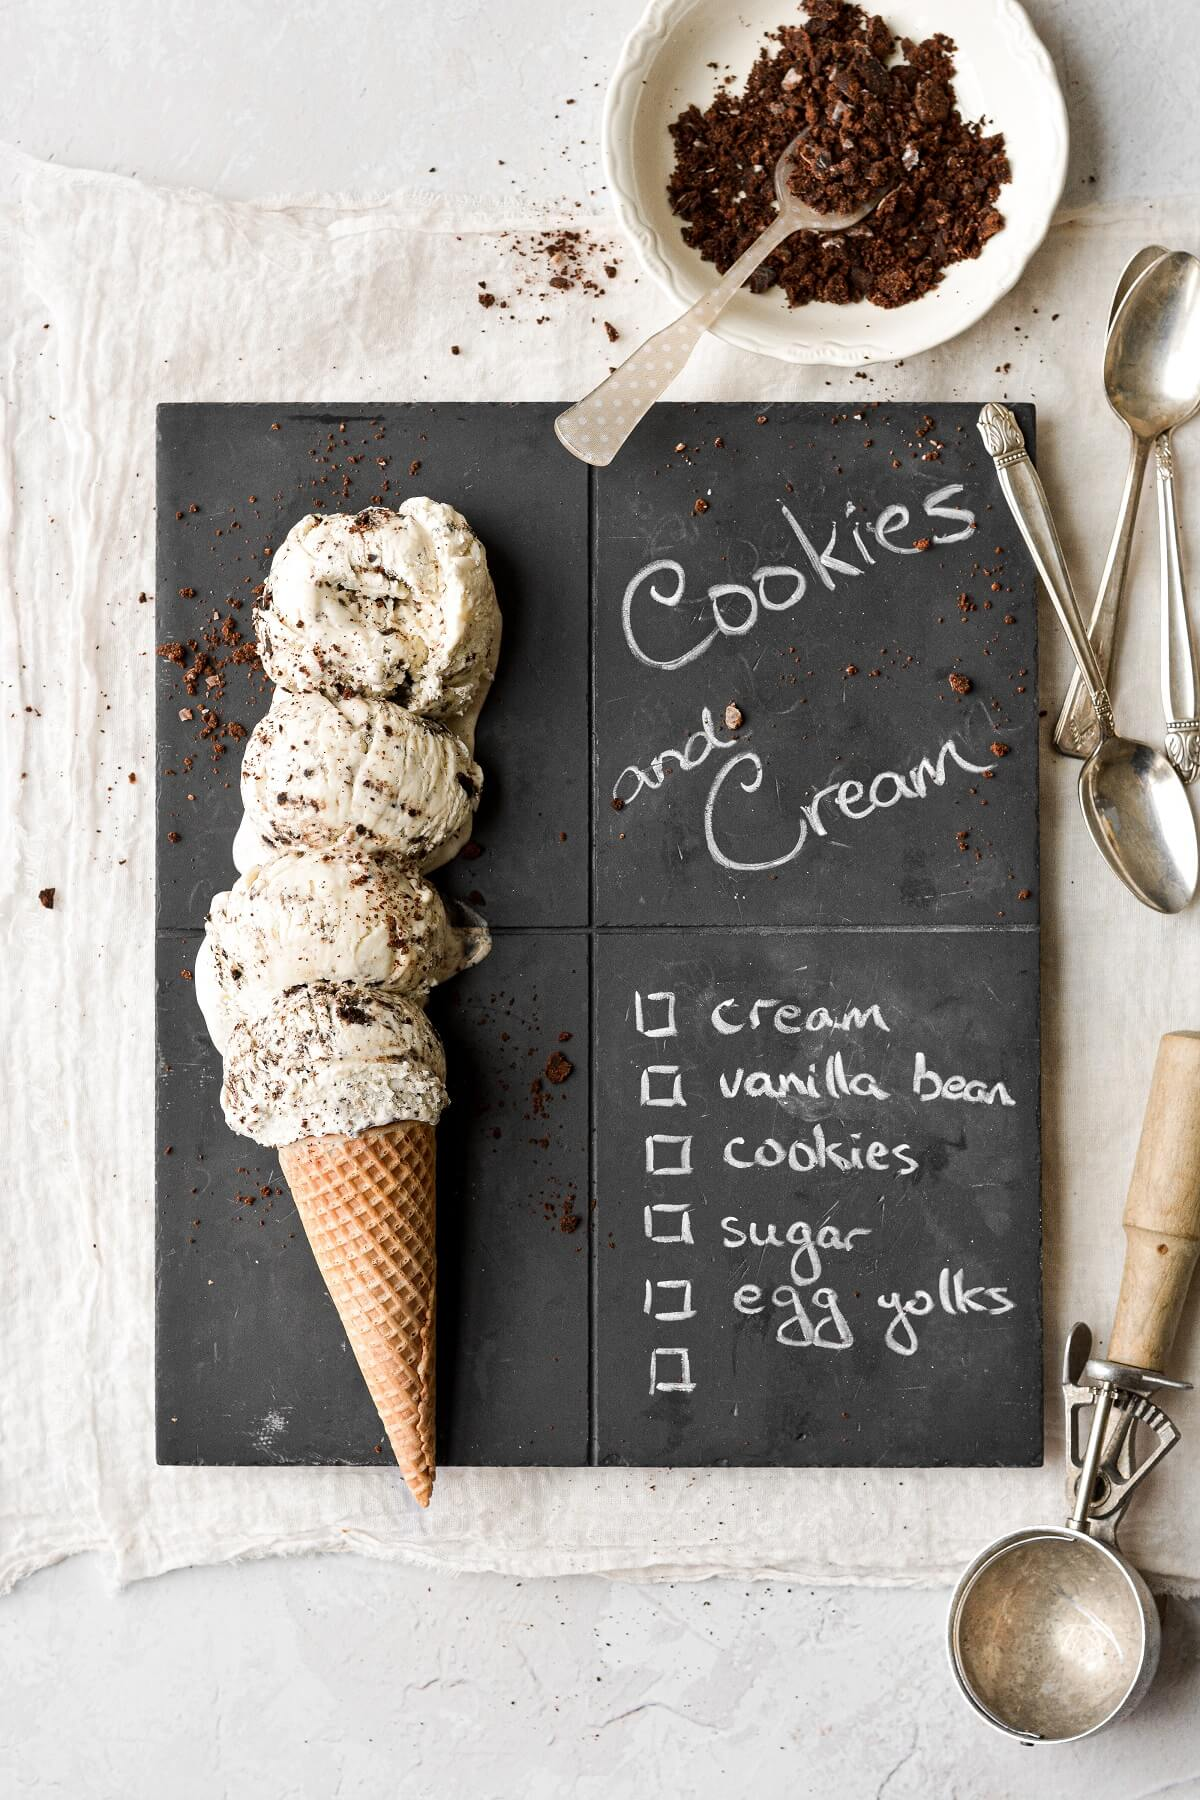 Scoops of cookies and cream ice cream on a chalkboard serving board.